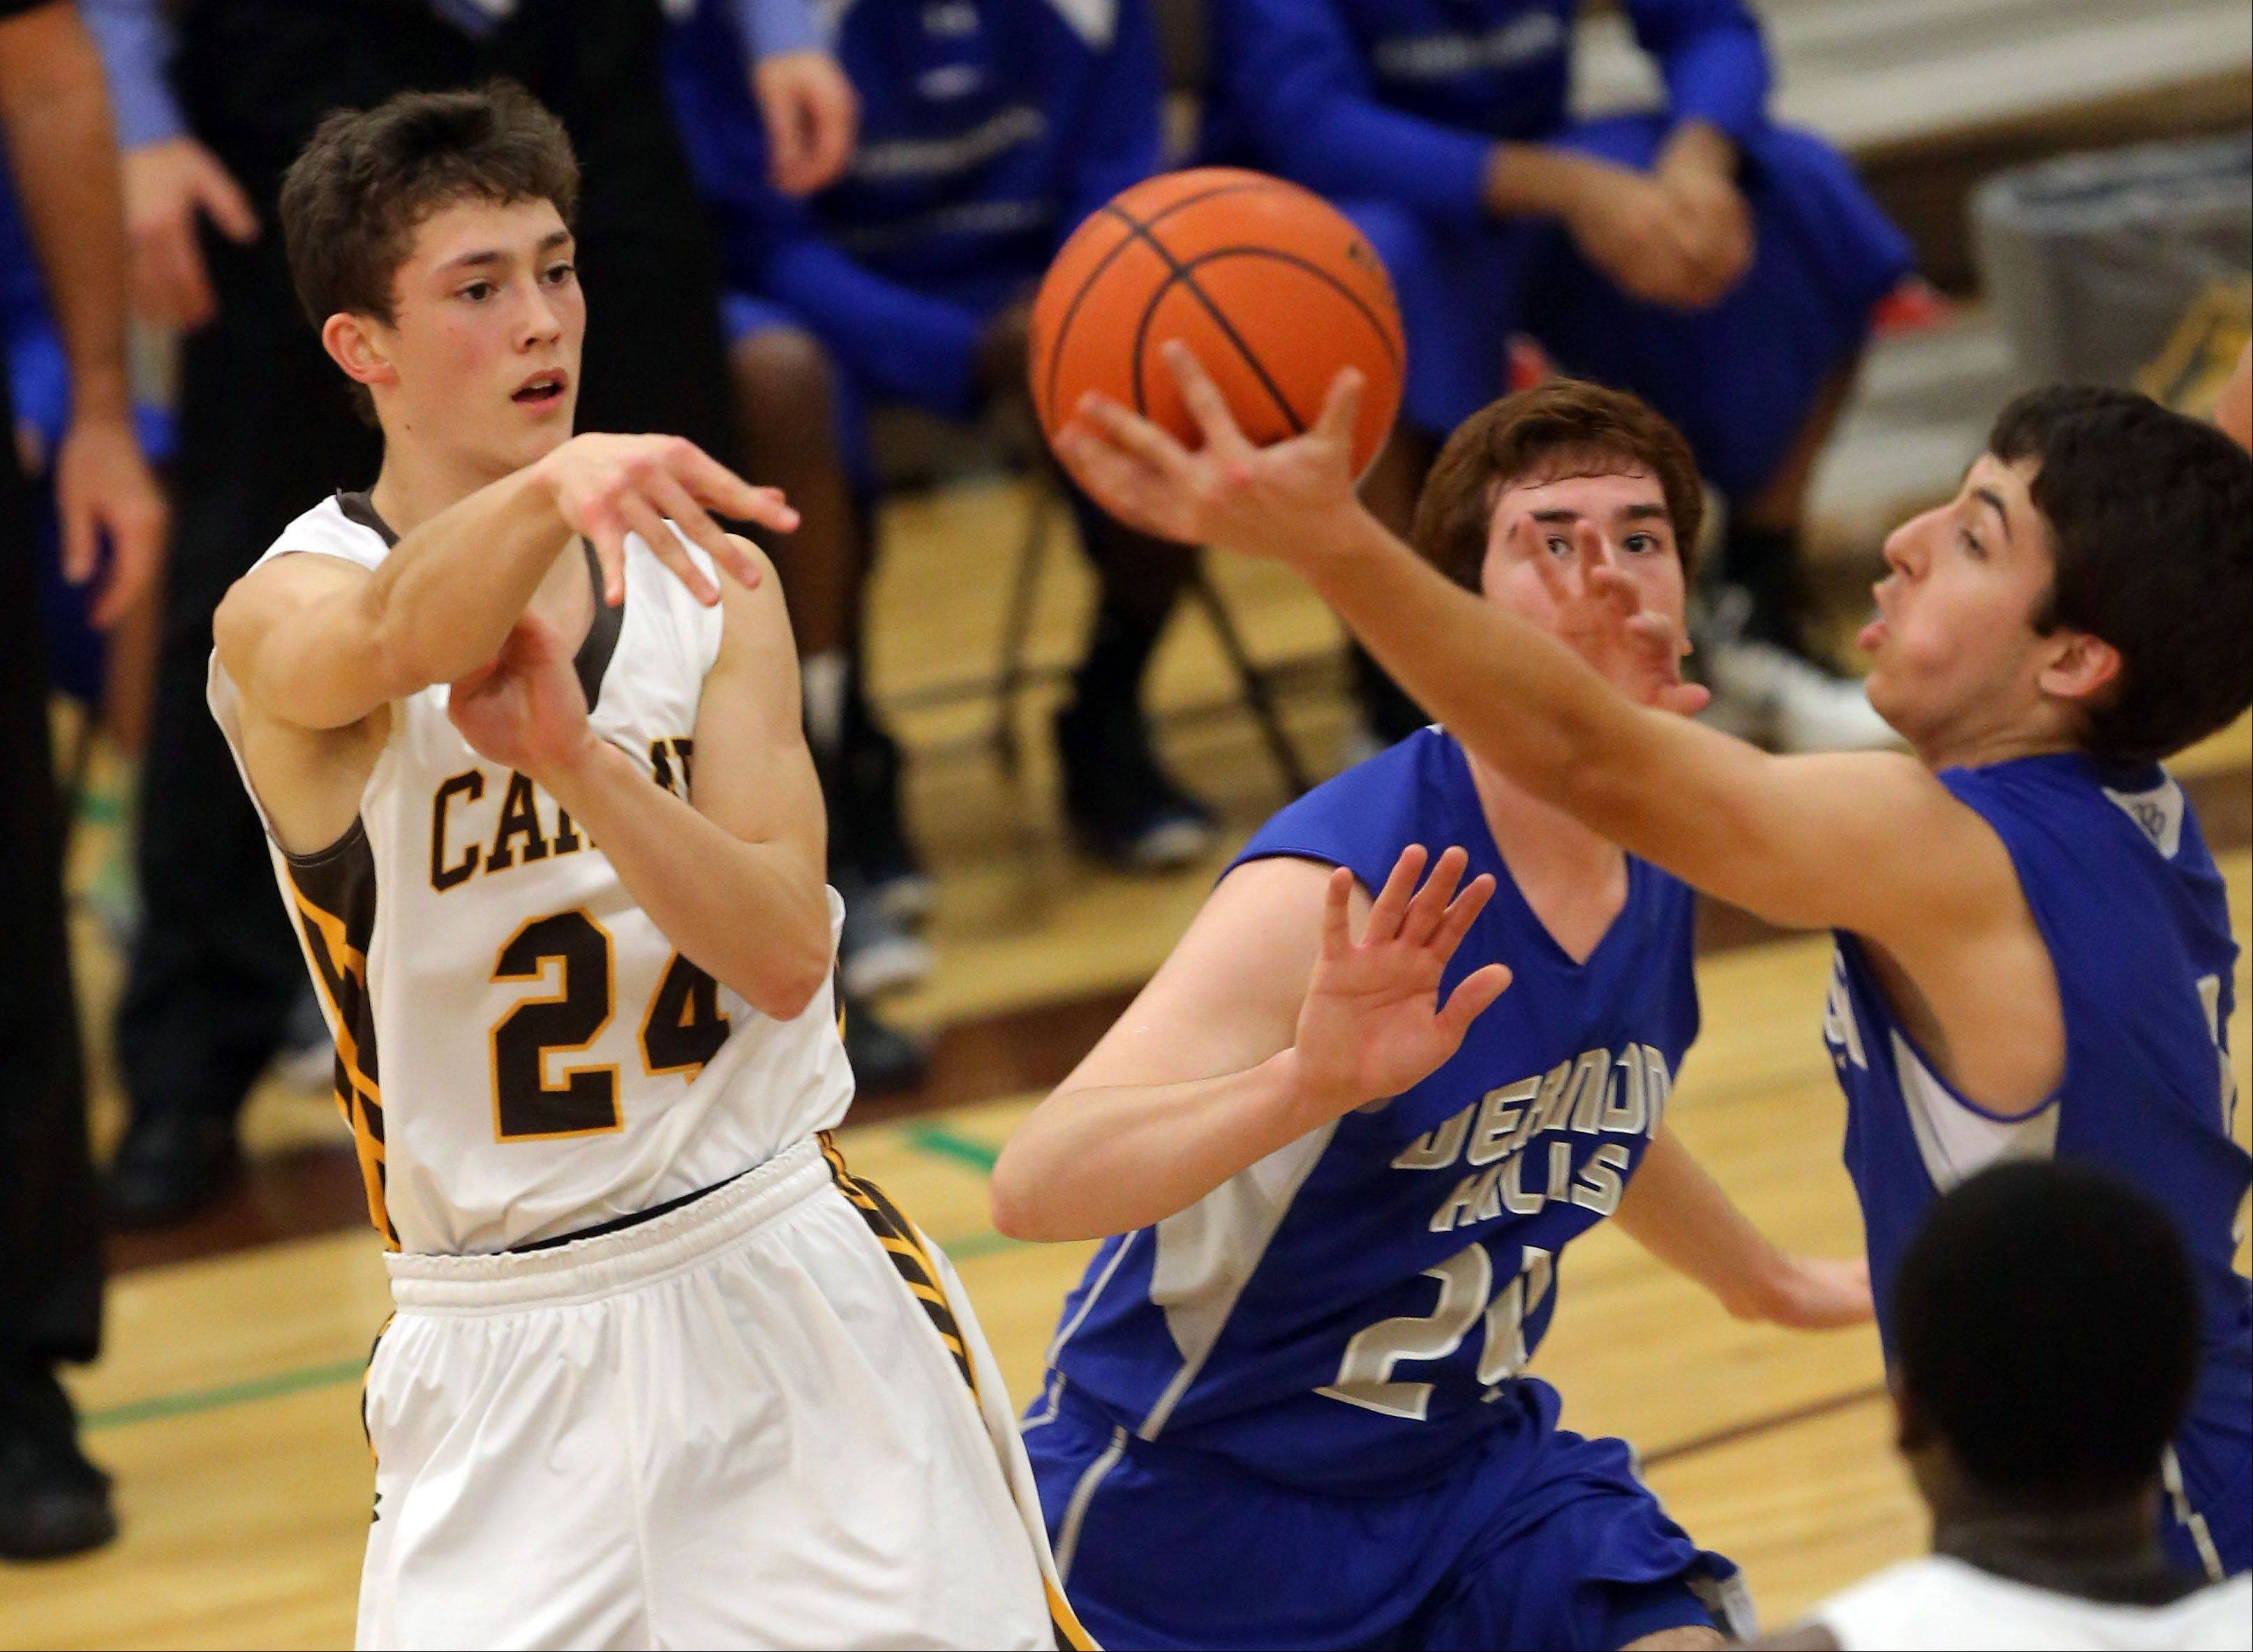 Carmel's Billy Kirby, left, tries to pass around Vernon Hills' Robby Nardini.